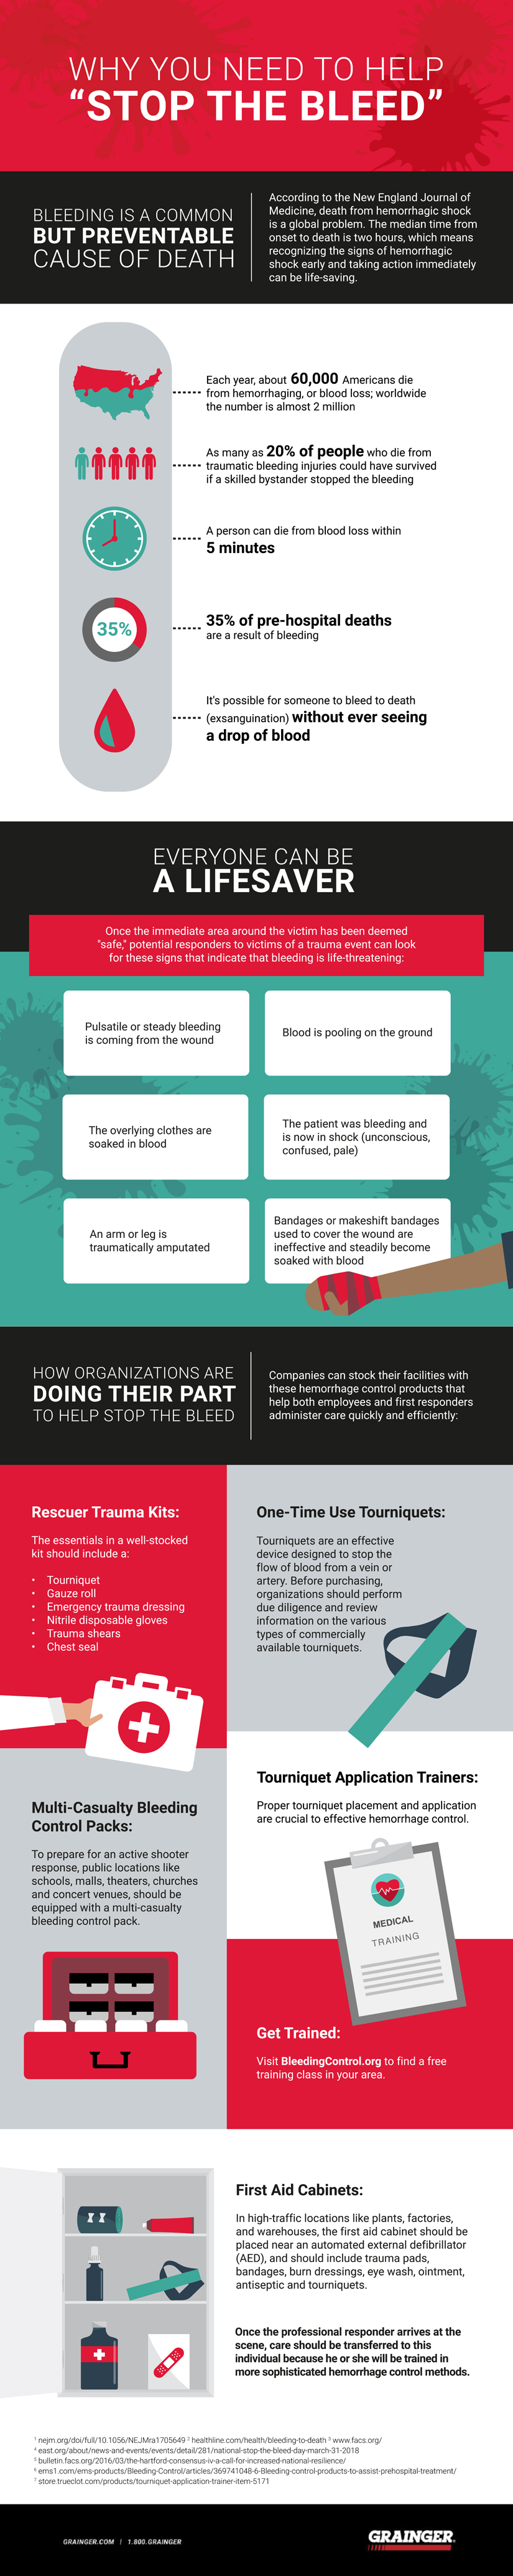 Equip Your Facility to Help Stop the Bleed – Grainger